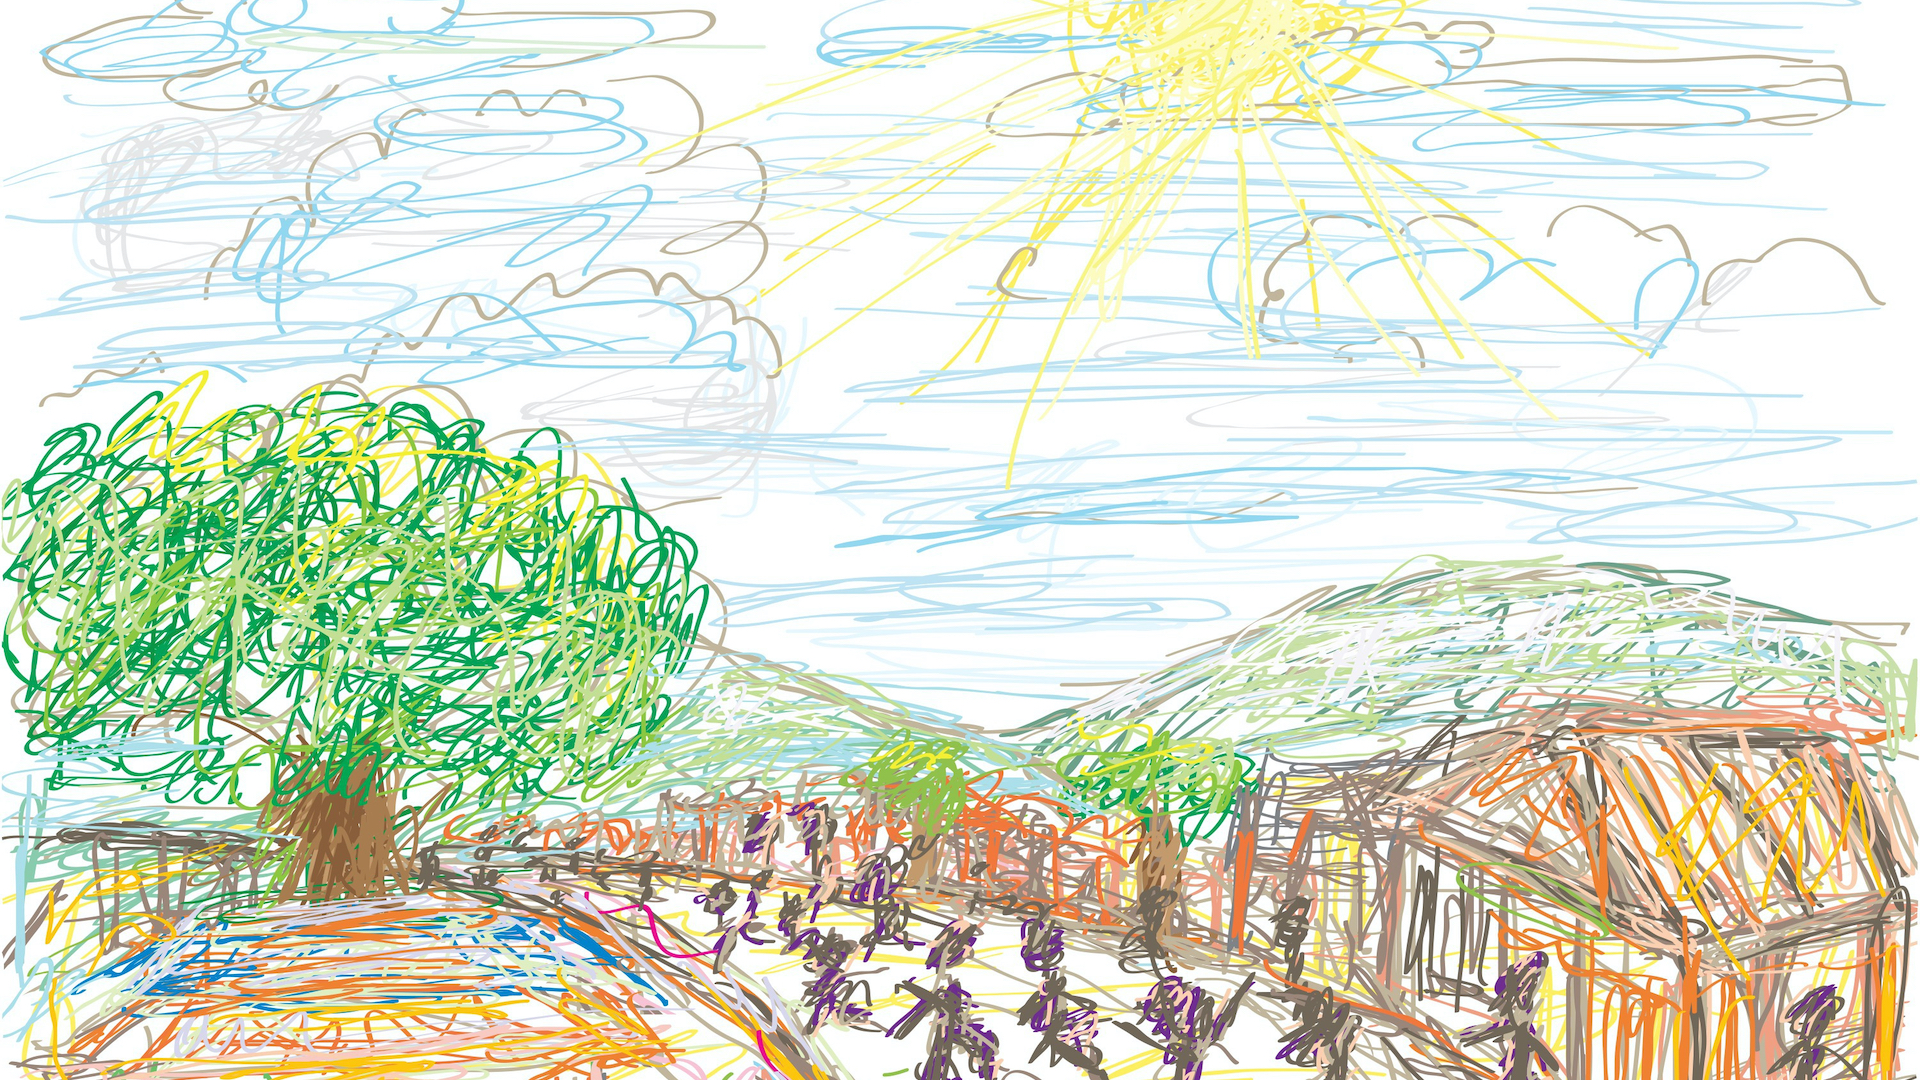 hand drawn picture of a community with people, buildings, trees and the sun shining